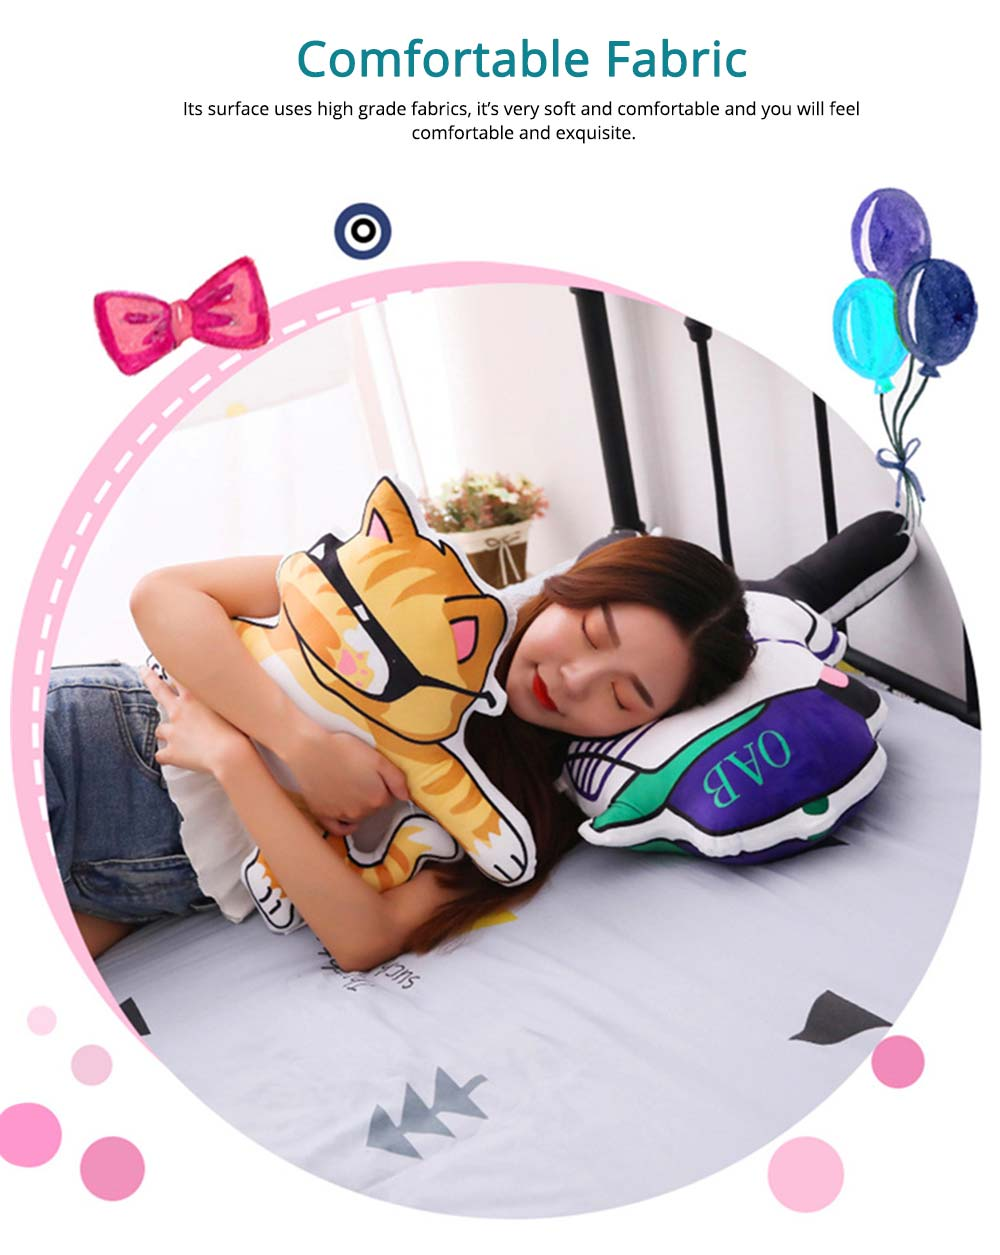 Hip-hop Youth League Hold Pillow, Comfortable Animals Doll with Metal Zipper, Printing Design Cotton Pillow 2